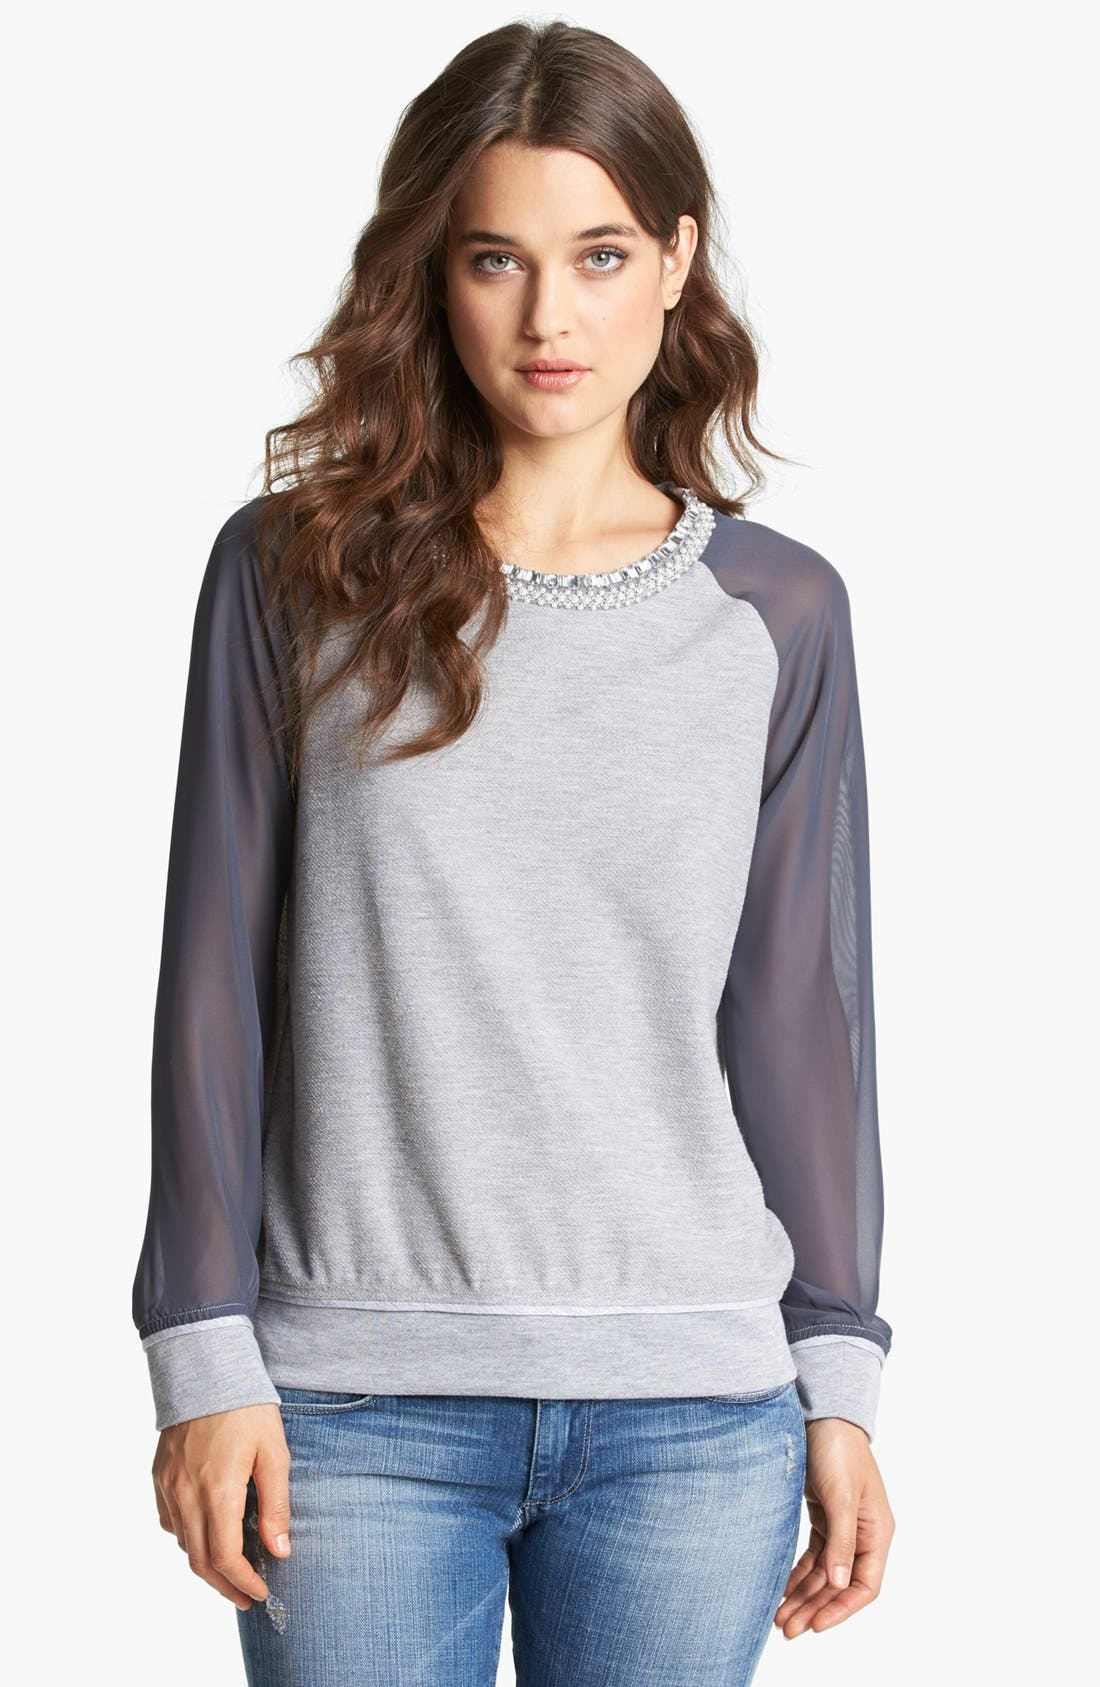 Alternate Image 1 Selected - Gibson Embellished Neck Sweatshirt (Petite)